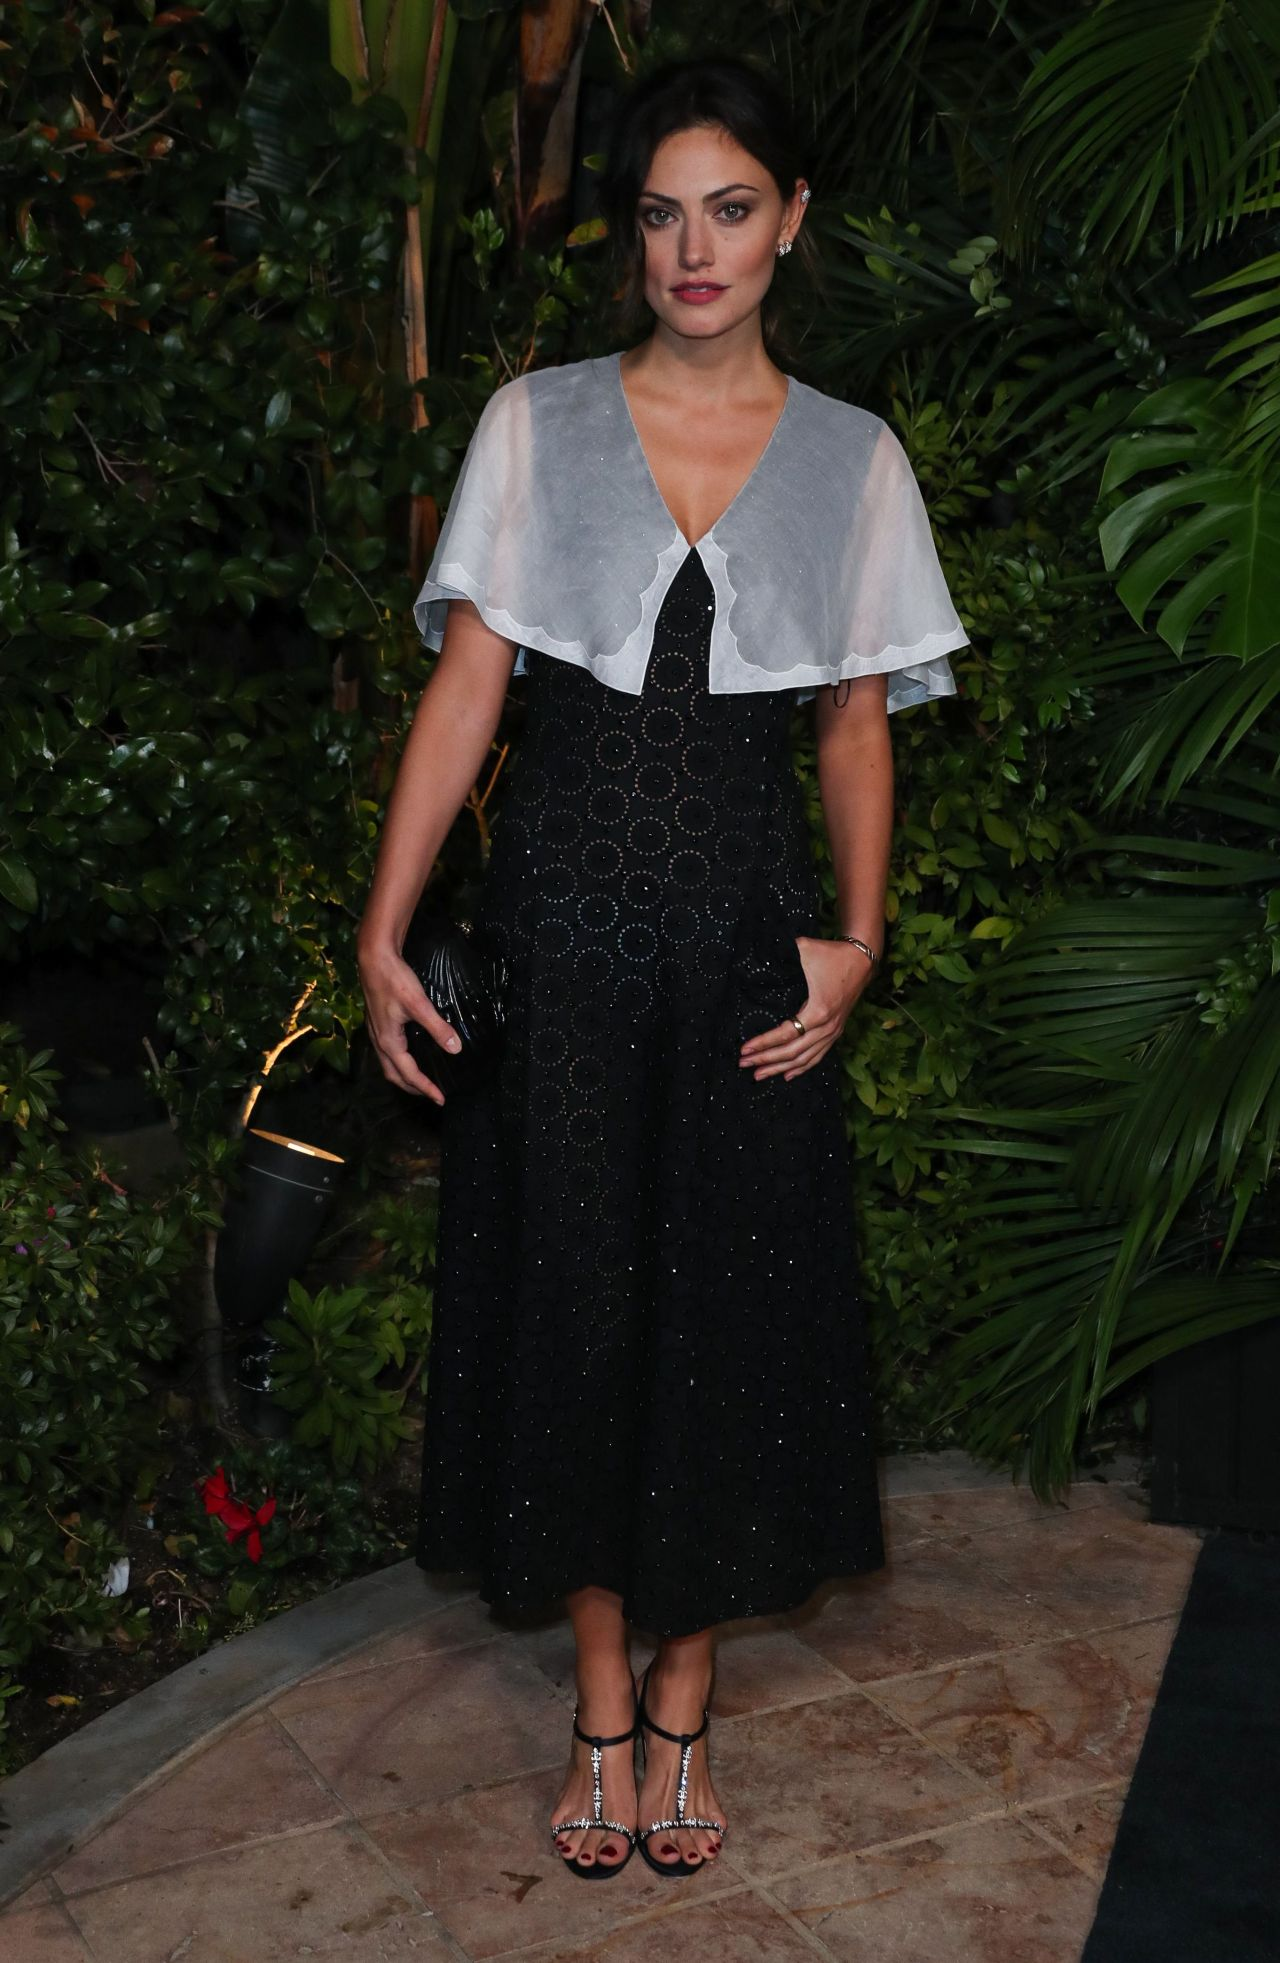 phoebe-tonkin-in-chanel-charles-finch-and-chanel-pre-oscar-awards-2020-dinner